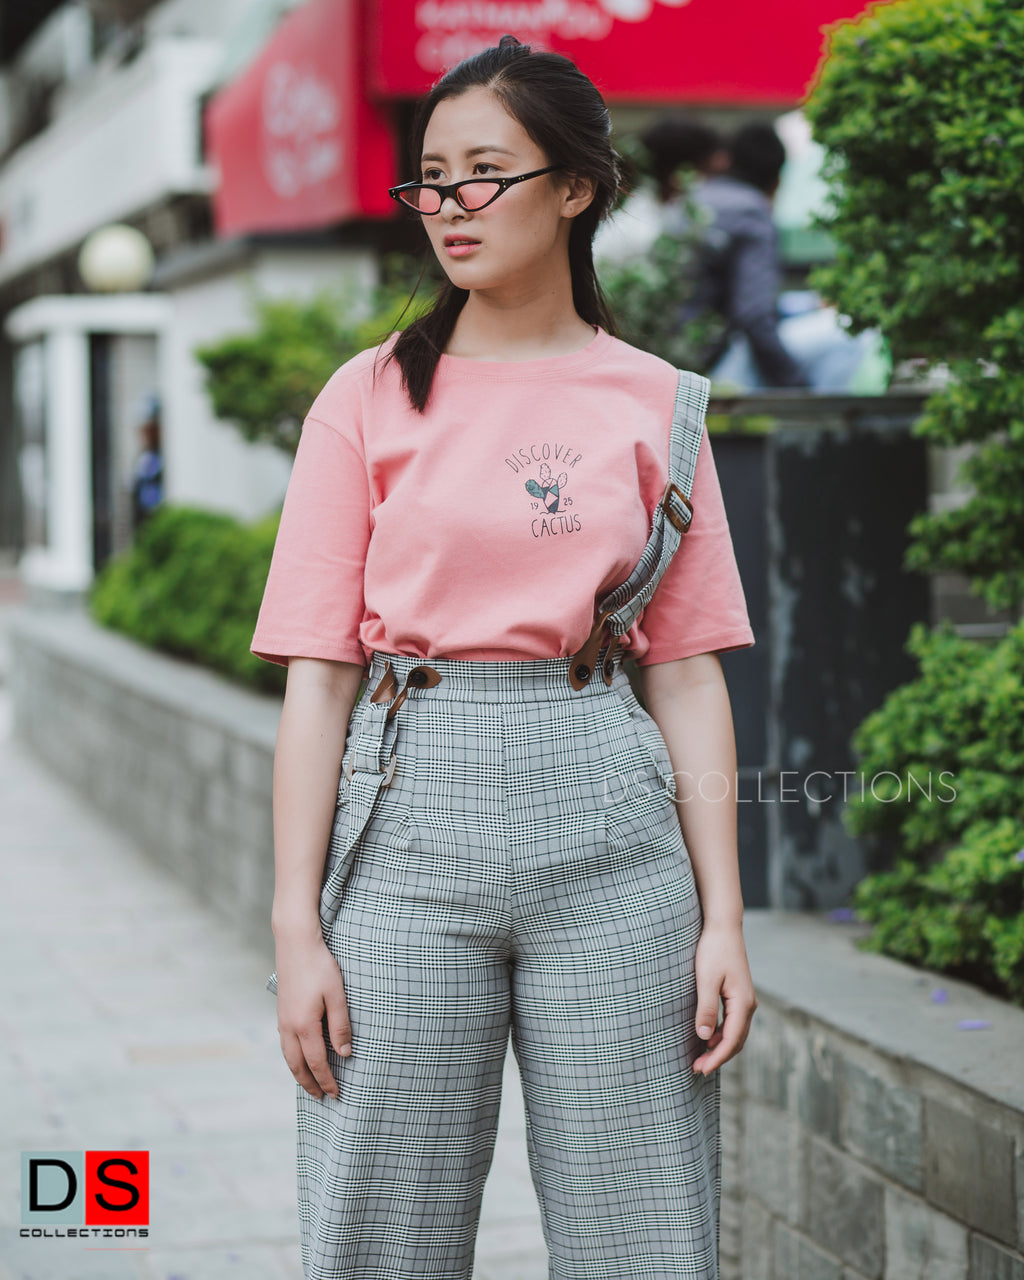 Women's Pant - Checkered Pant With Suspenders | DS Collections Nepal